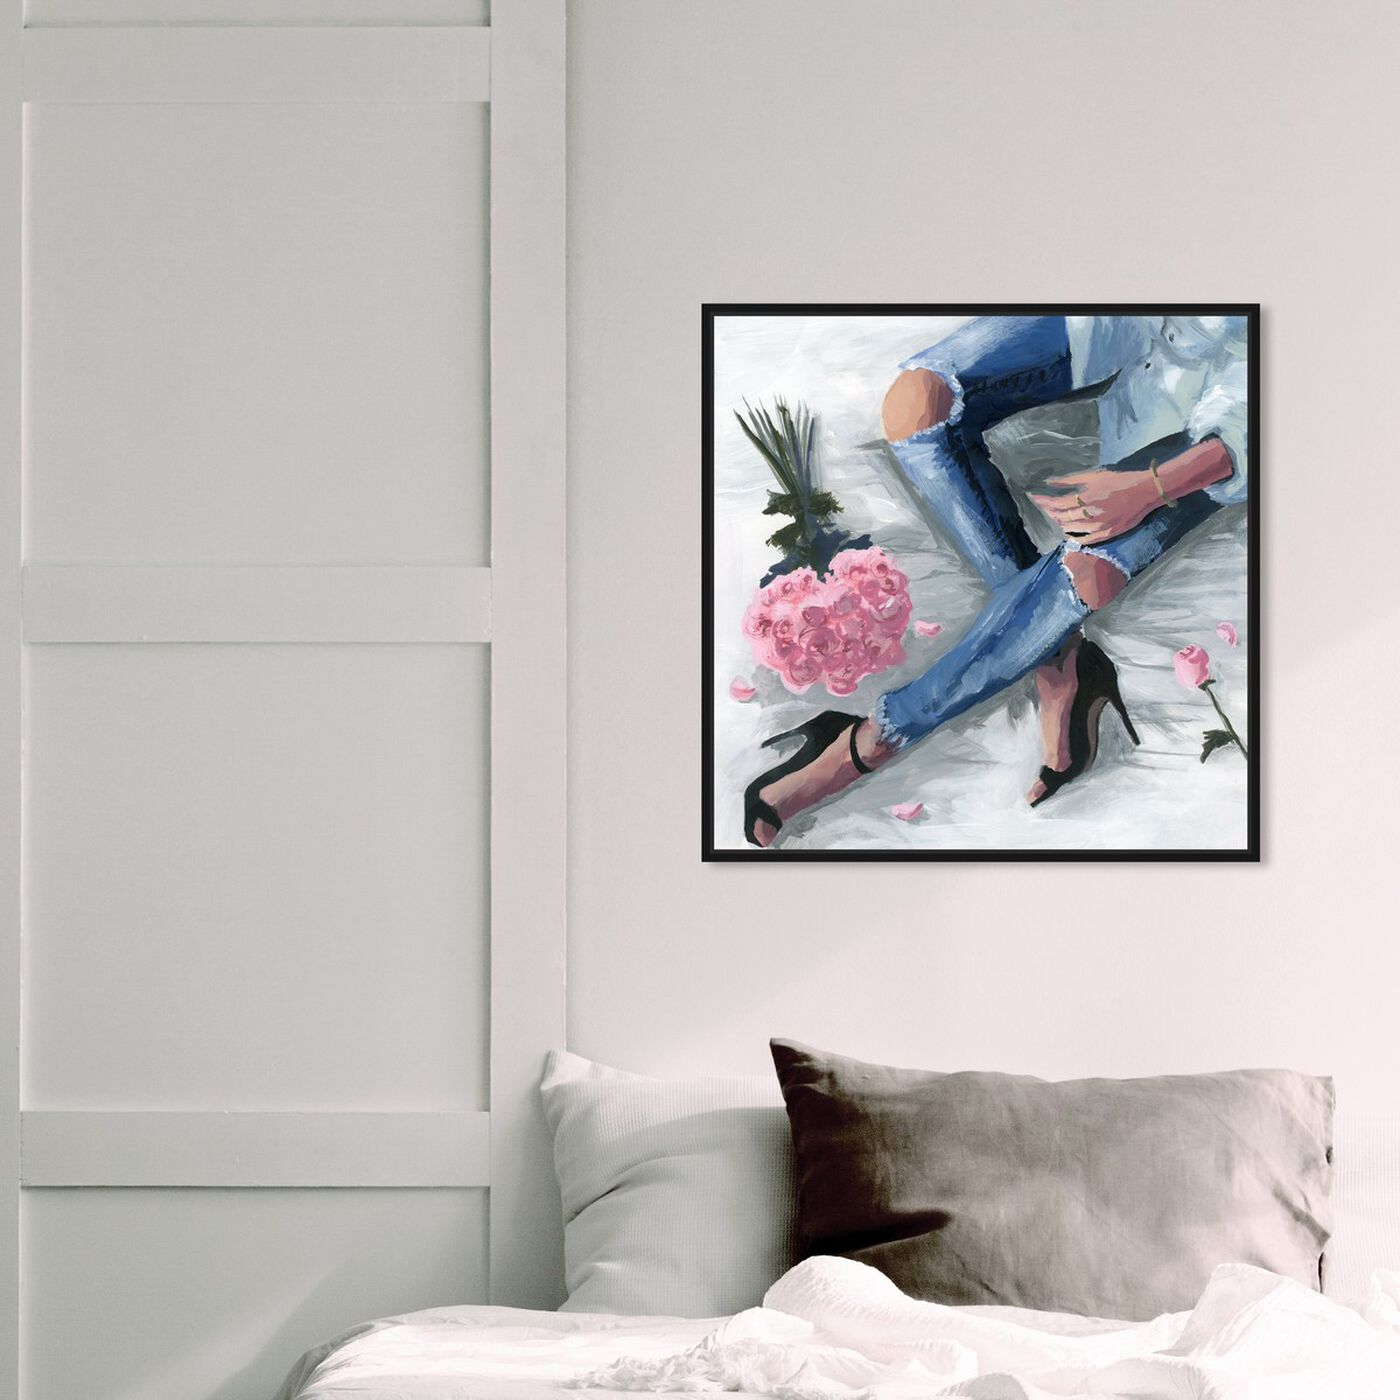 Hanging view of Romantic Jeans featuring fashion and glam and outfits art.